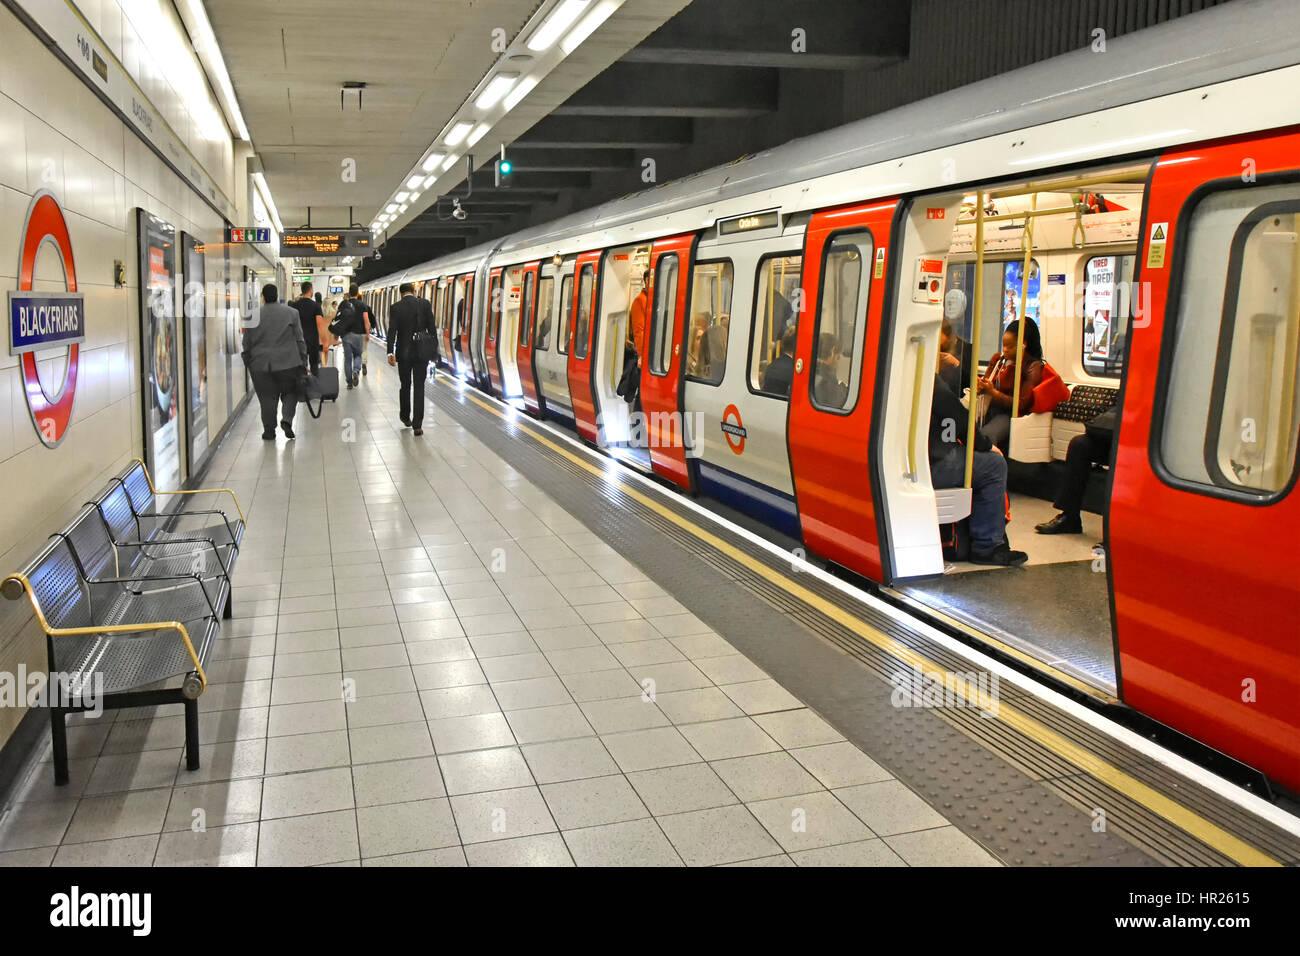 London Underground Blackfriars station platform step free train access for wheelchair disability back view of passengers - Stock Image